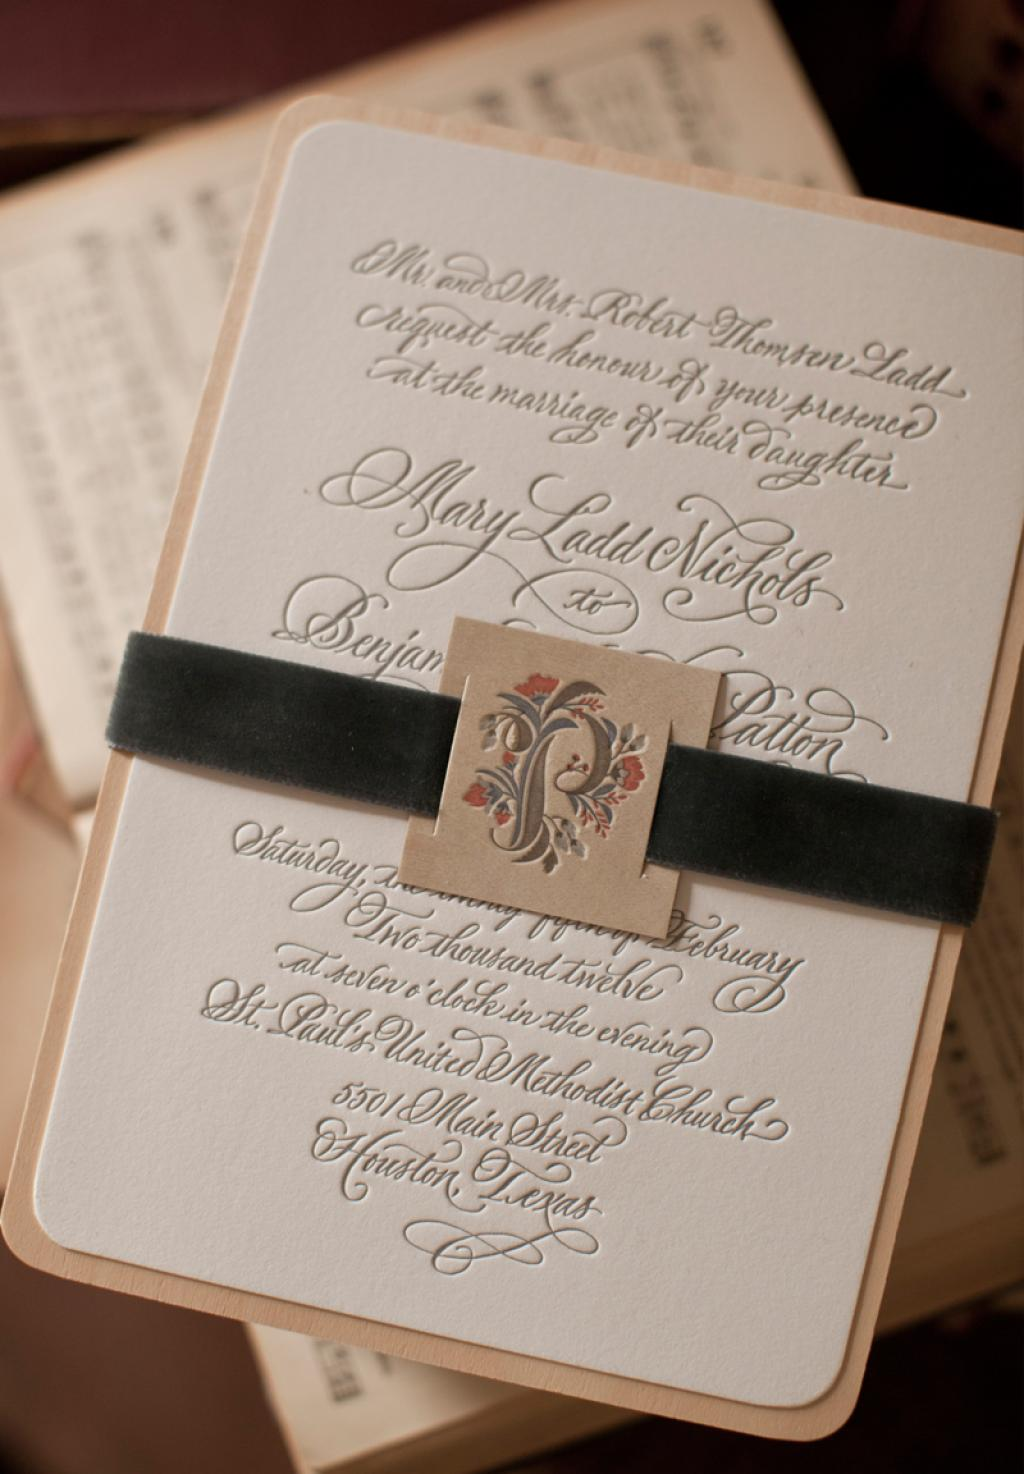 cheap wedding invitations with ribbon cheap elegant wedding invitations ideas cheap wedding invitation ideas diy wedding invitations cheap amazing elegant hd image pictures ideas